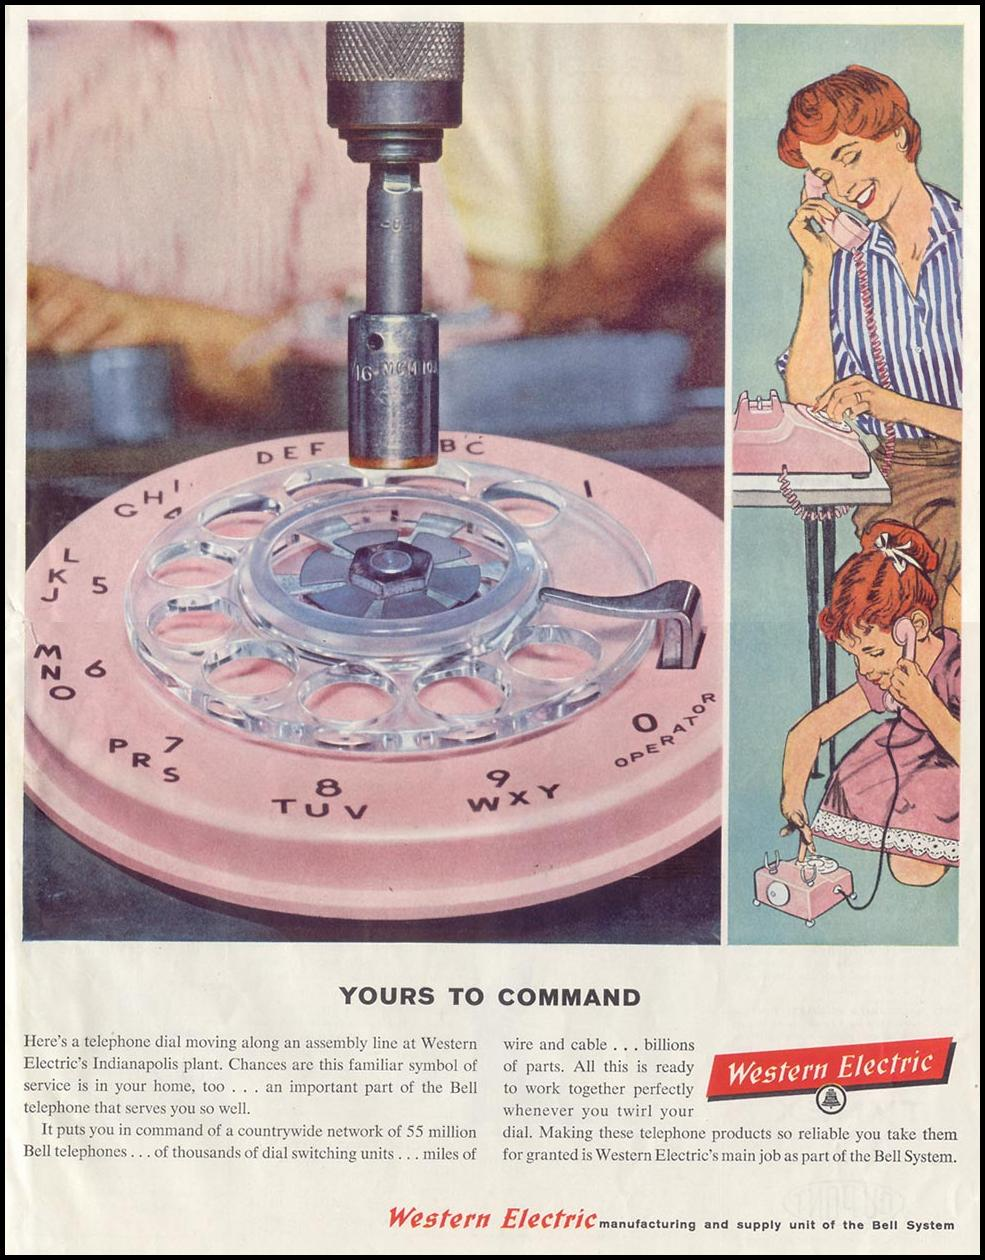 TELEPHONE EQUIPMENT SATURDAY EVENING POST 08/15/1959 p. 97